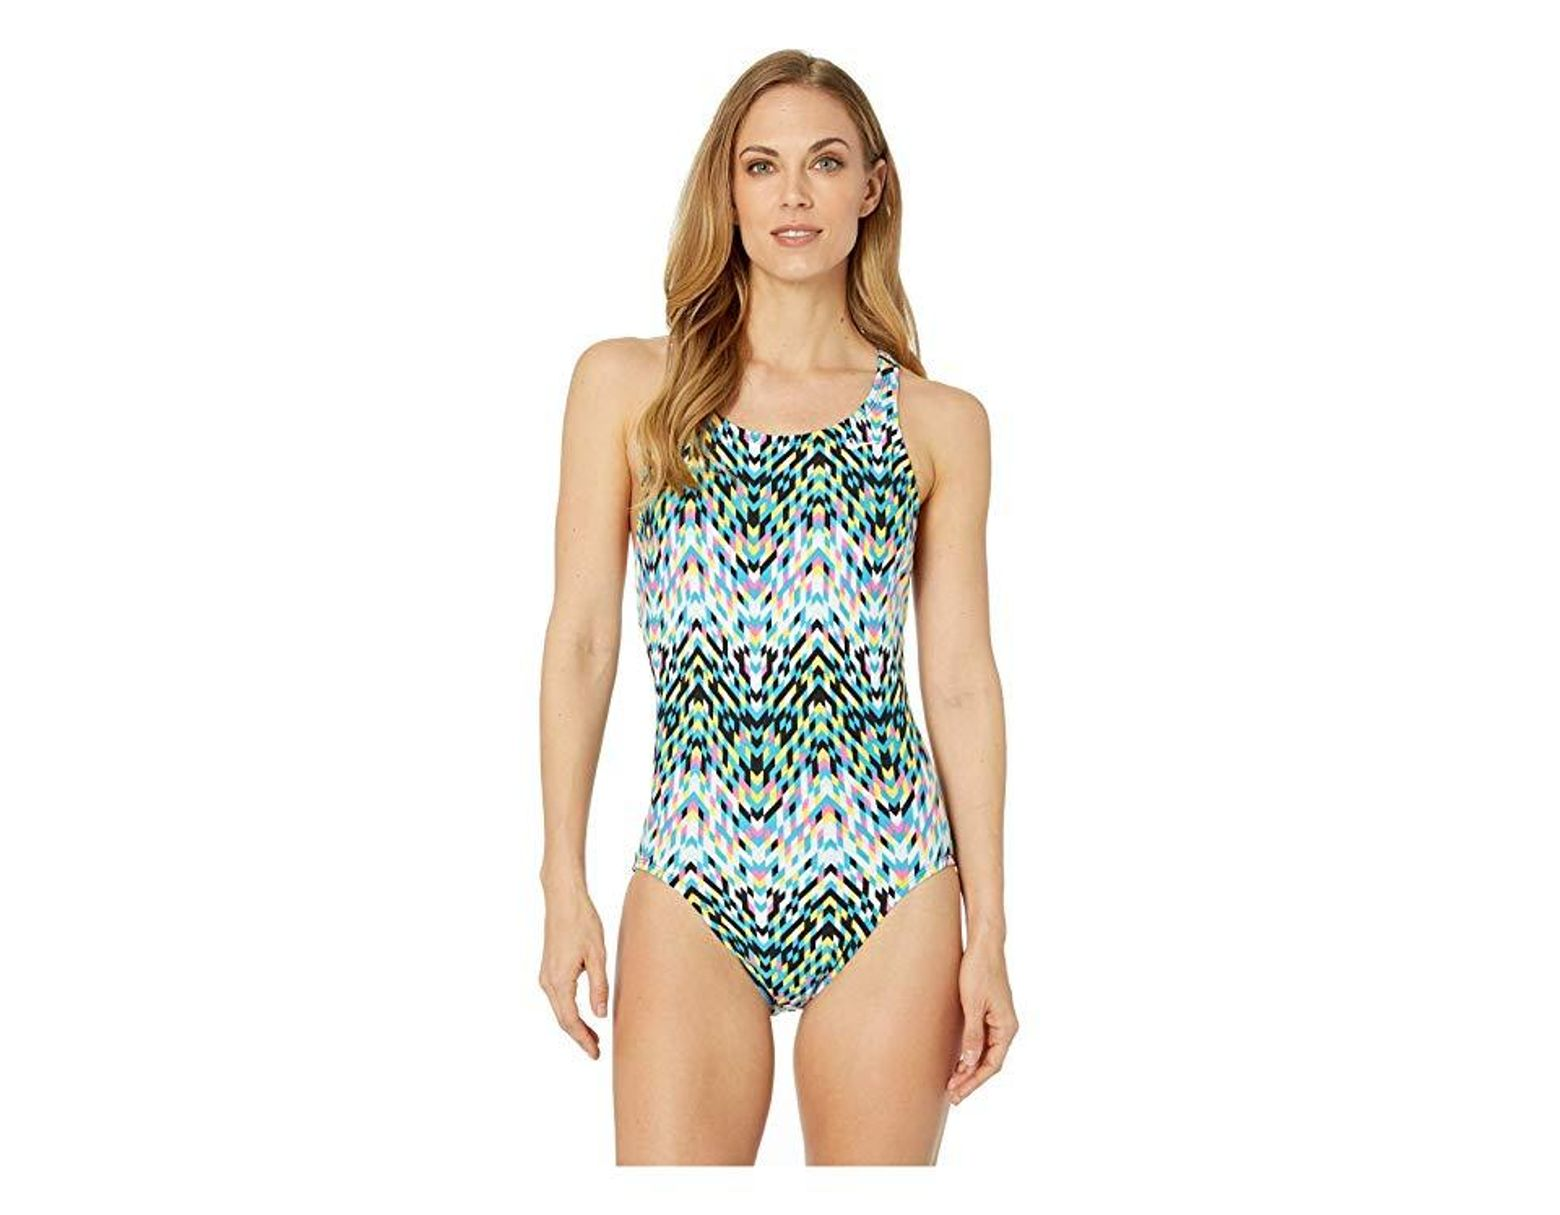 a1e56be8b8 Nike Digi Arrow Power Back One-piece (black) Swimsuits One Piece in Black -  Save 41% - Lyst